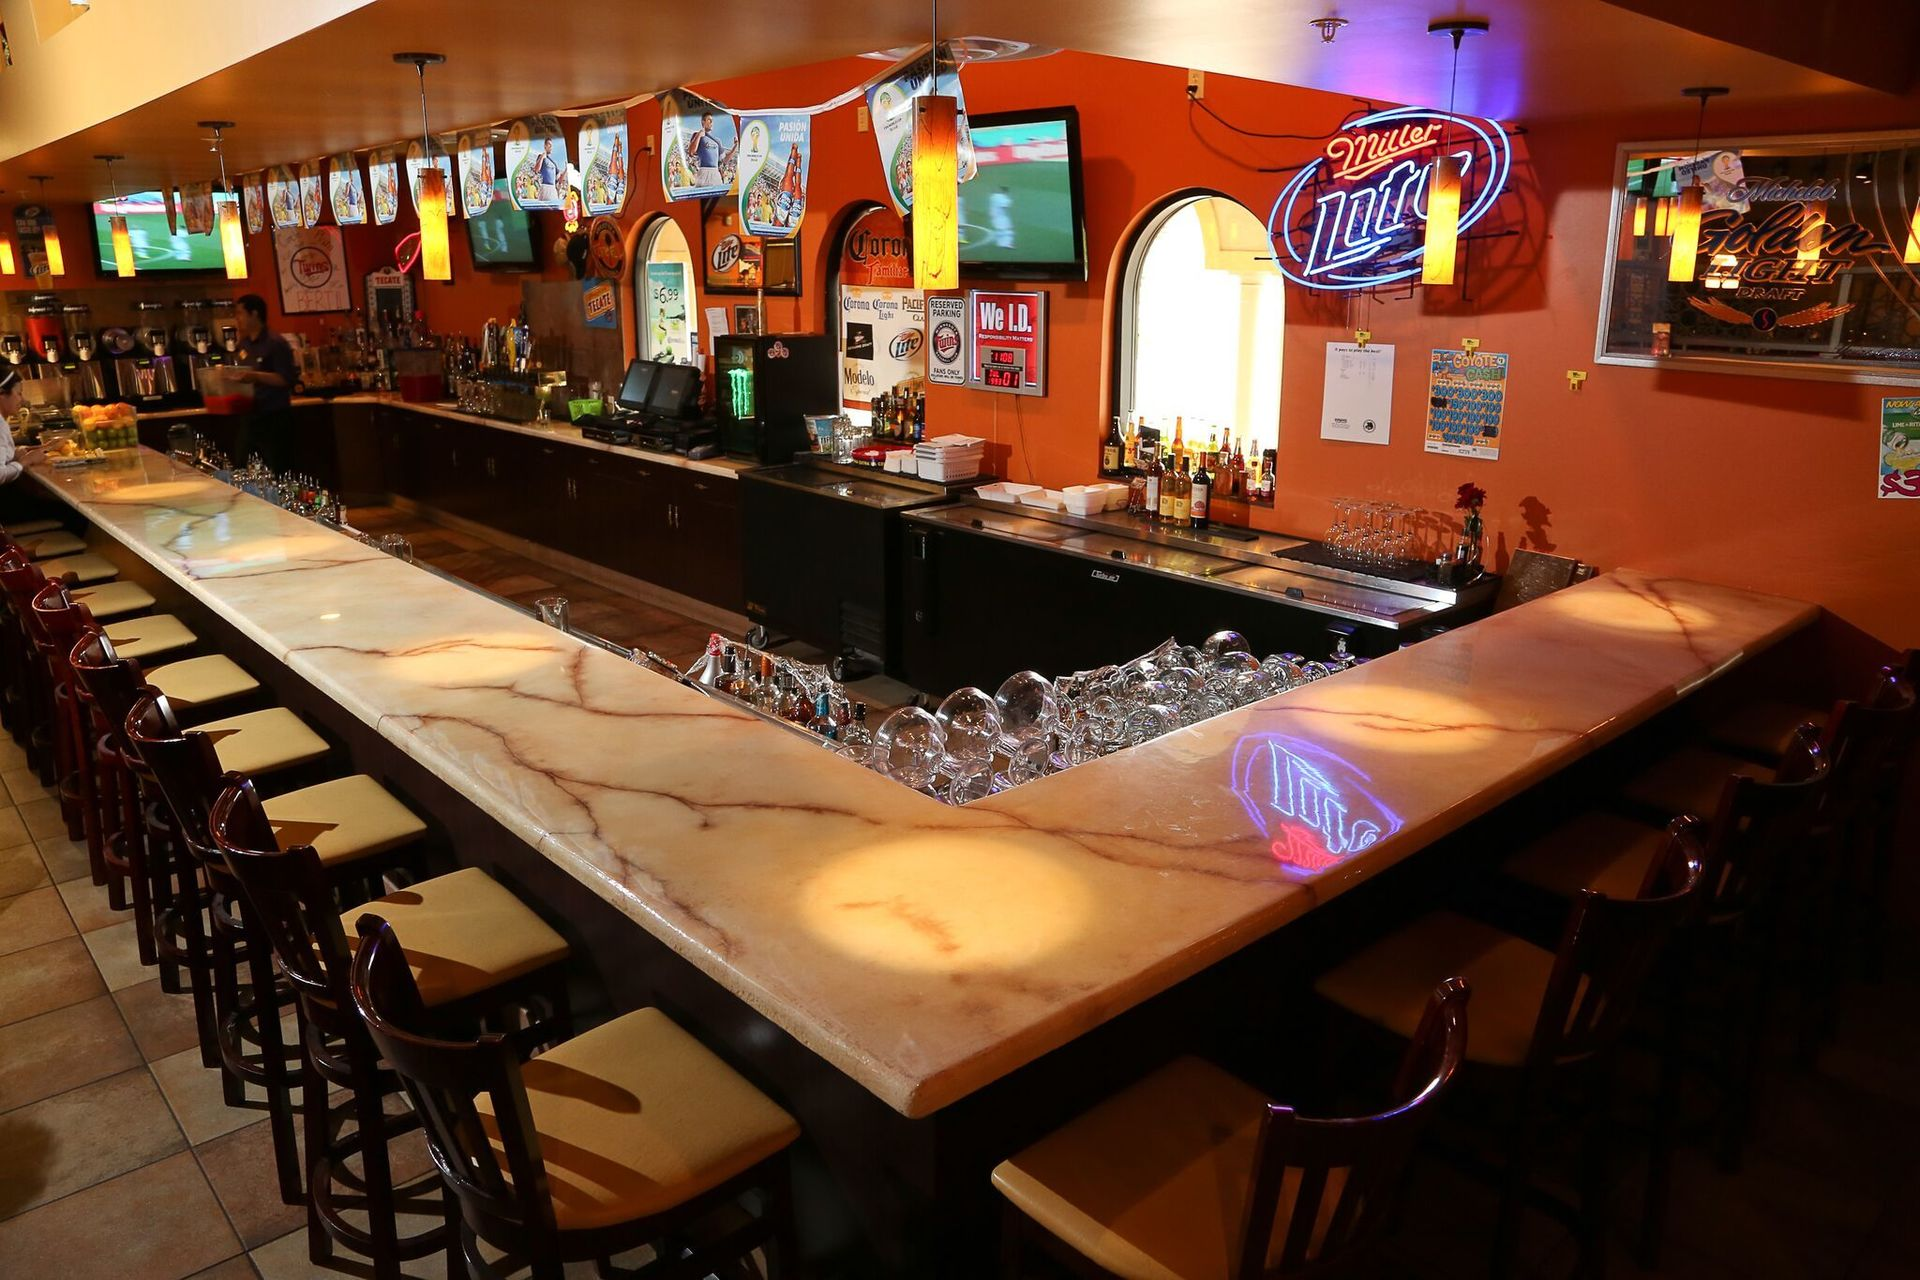 Granicrete provided concrete overlay counters were selected for durability and the NSF (National Sanitation Foundation) certification, which means no bacteria or staining. Easy maintenance and all custom designed countertops for Plaza Mareno in Owatonna, MN.